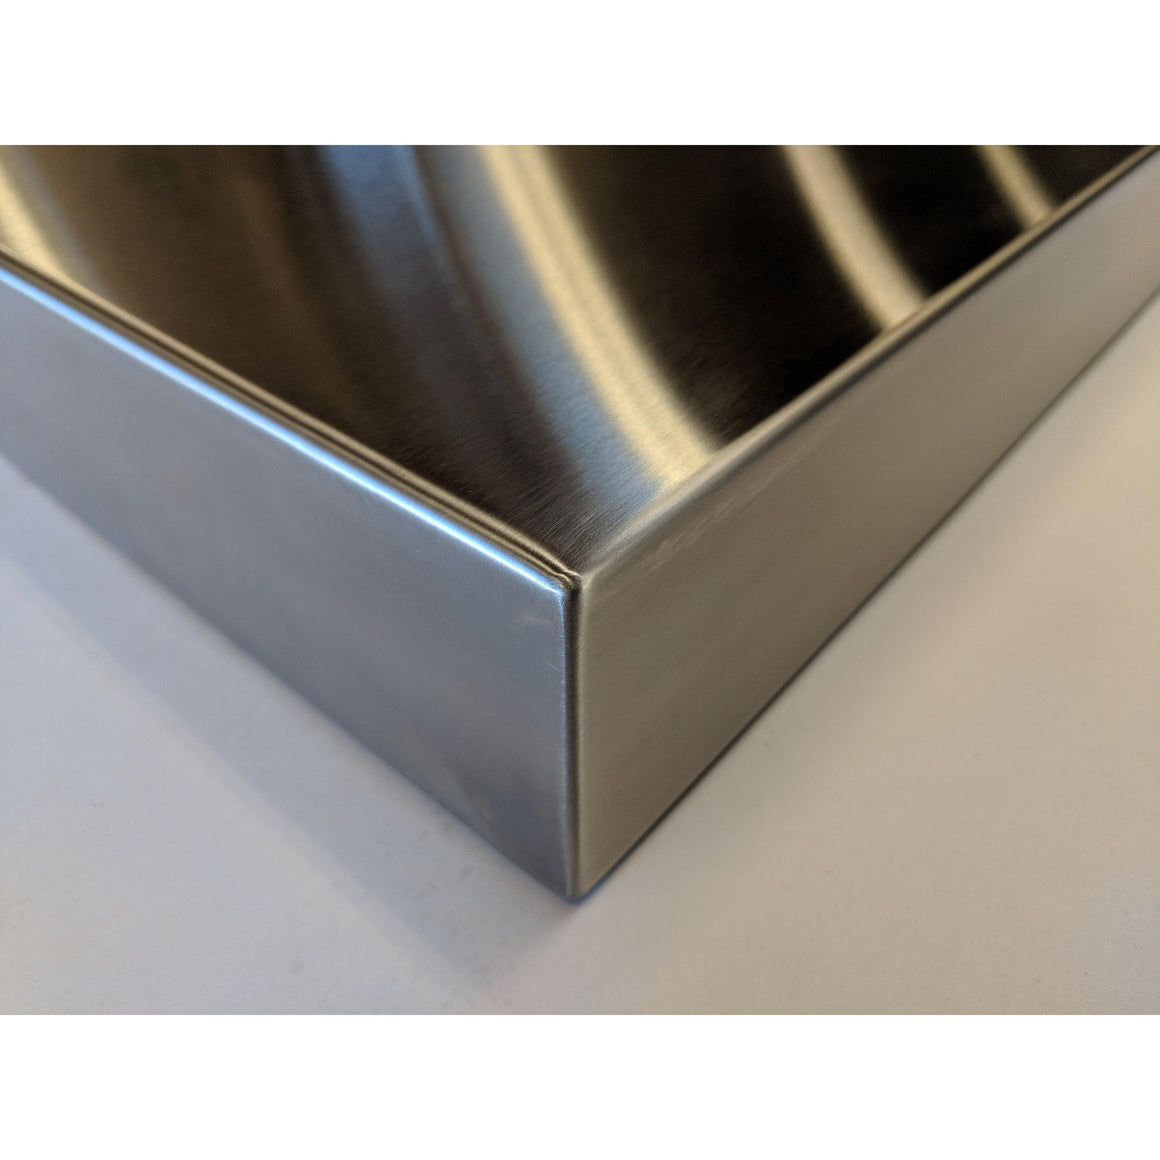 Stainless Steel Floating shelf used for Bar Glasses